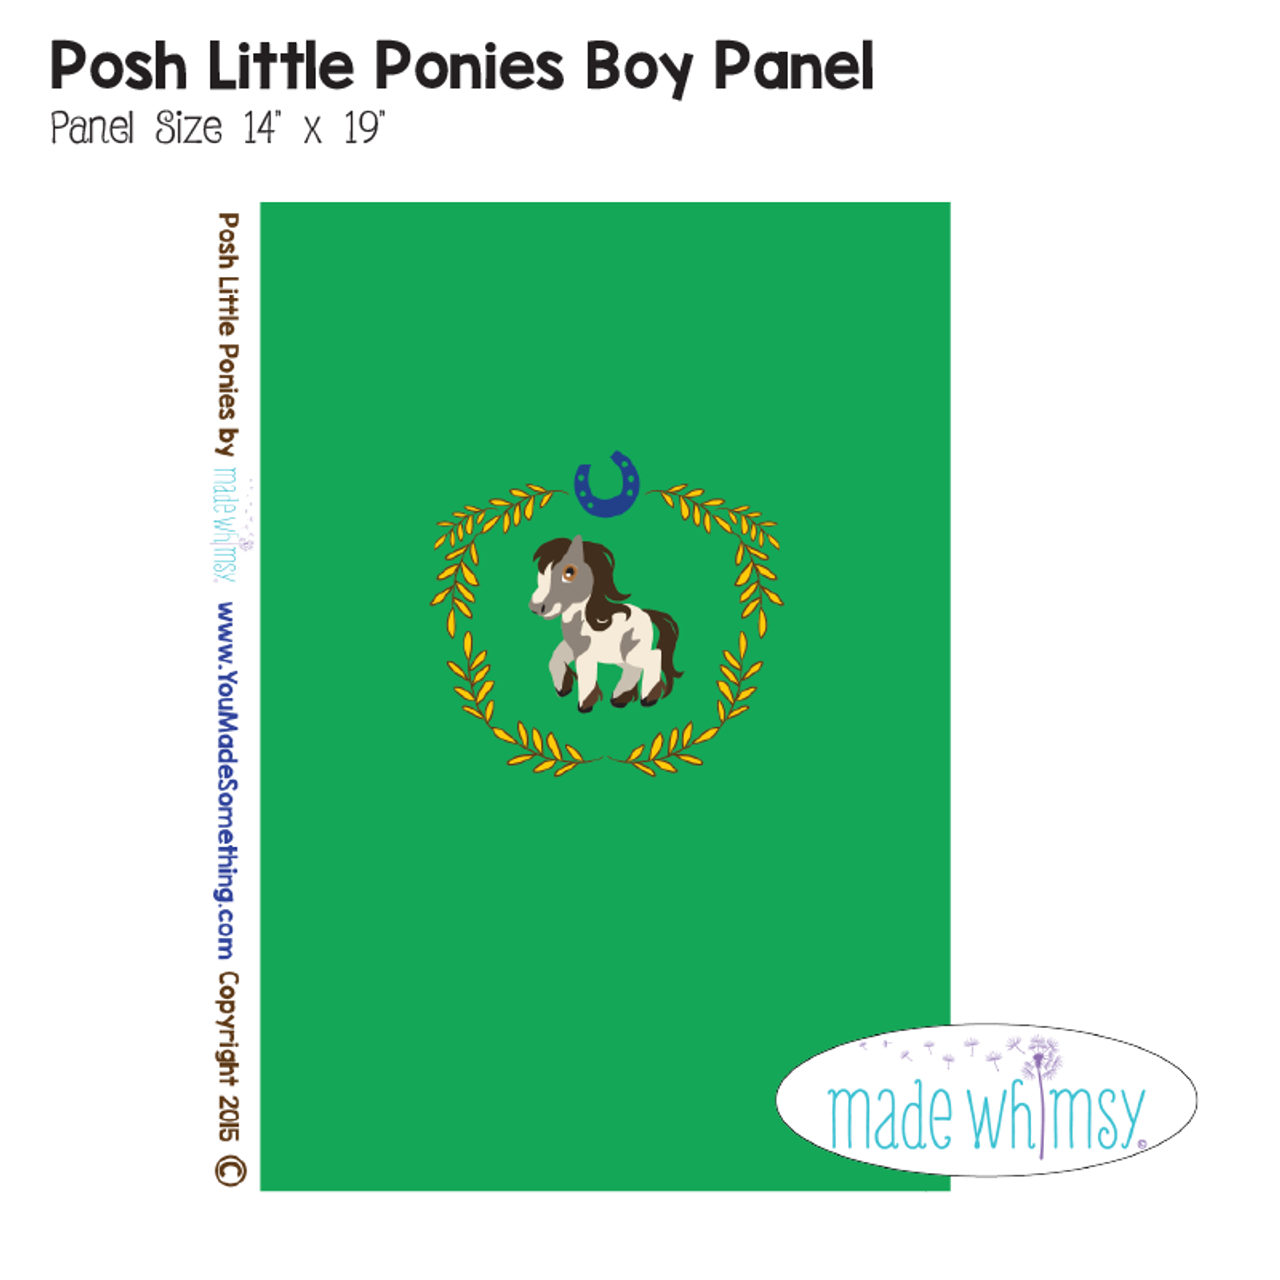 Posh Little Ponies Boy Knit Panel By Made Whimsy